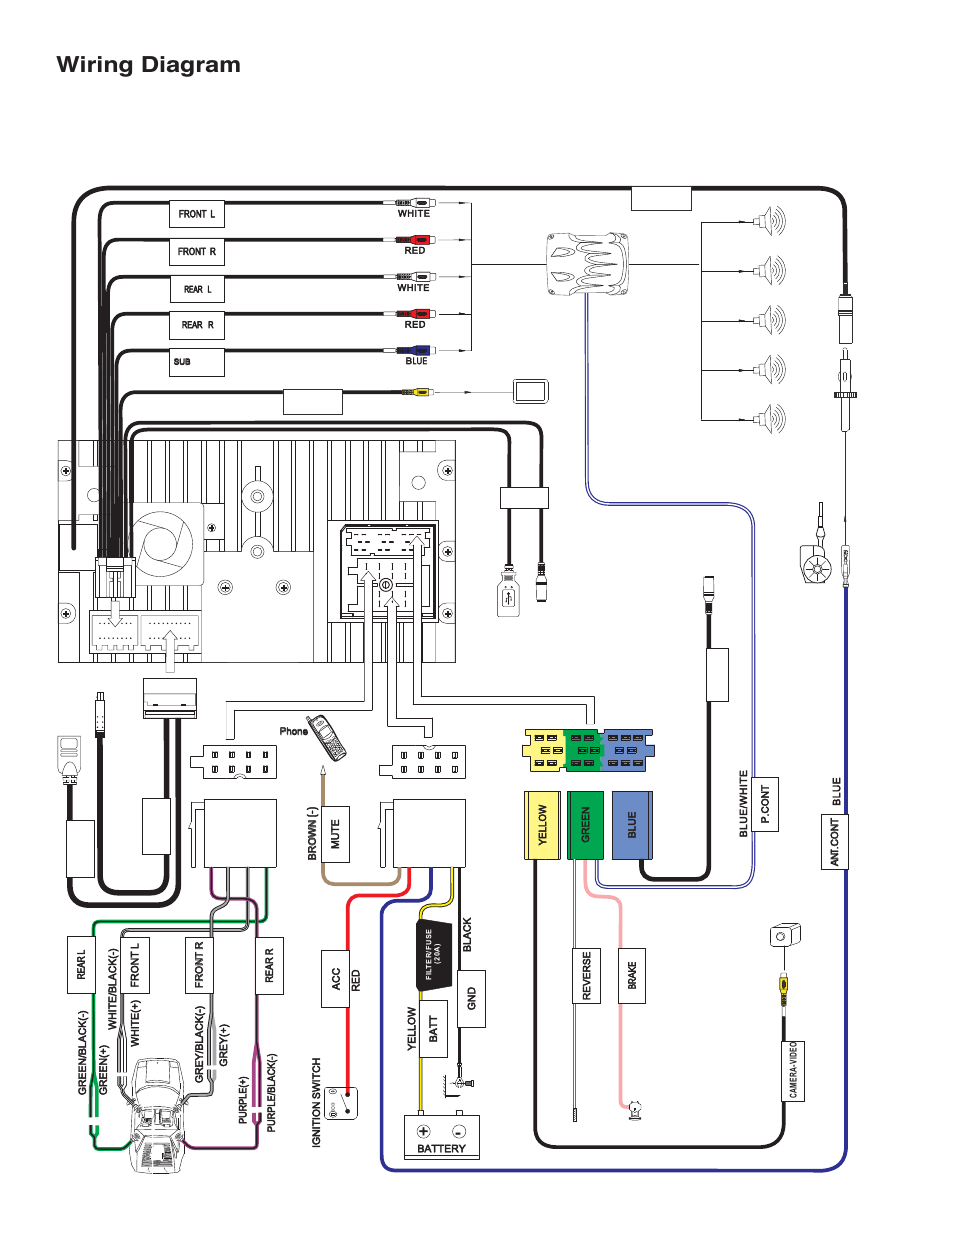 jensen vm9224 page4?resize\\\=665%2C861 metal halide wiring diagram cel wiring diagram images metal halide wiring diagram at alyssarenee.co